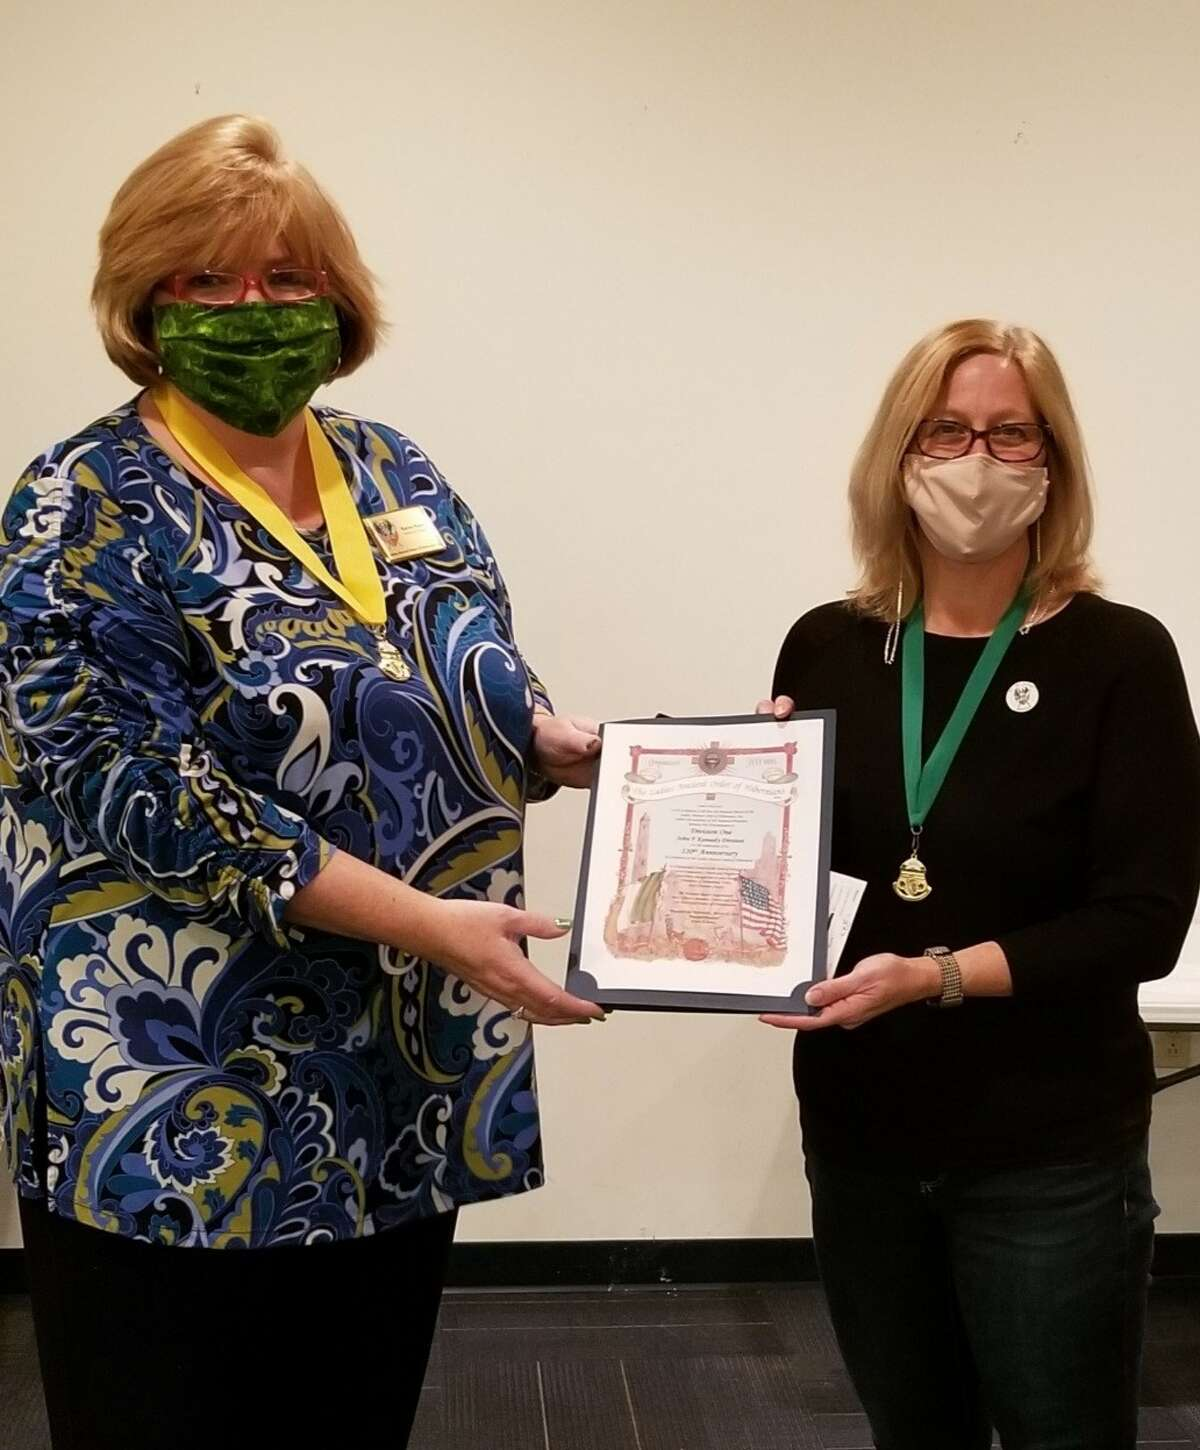 On March 10, the Ladies Ancient Order of Hibernians Schenectady JFK Division 1 celebrated its 120th anniversary. At a ceremony to mark this milestone, LAOH National President Karen Keane, left, presented Schenectady LAOH's president Kim DePeaux, right, with a proclamation. During the event, the LAOH also honored eight living past presidents from the Schenectady division as well as its deceased members.